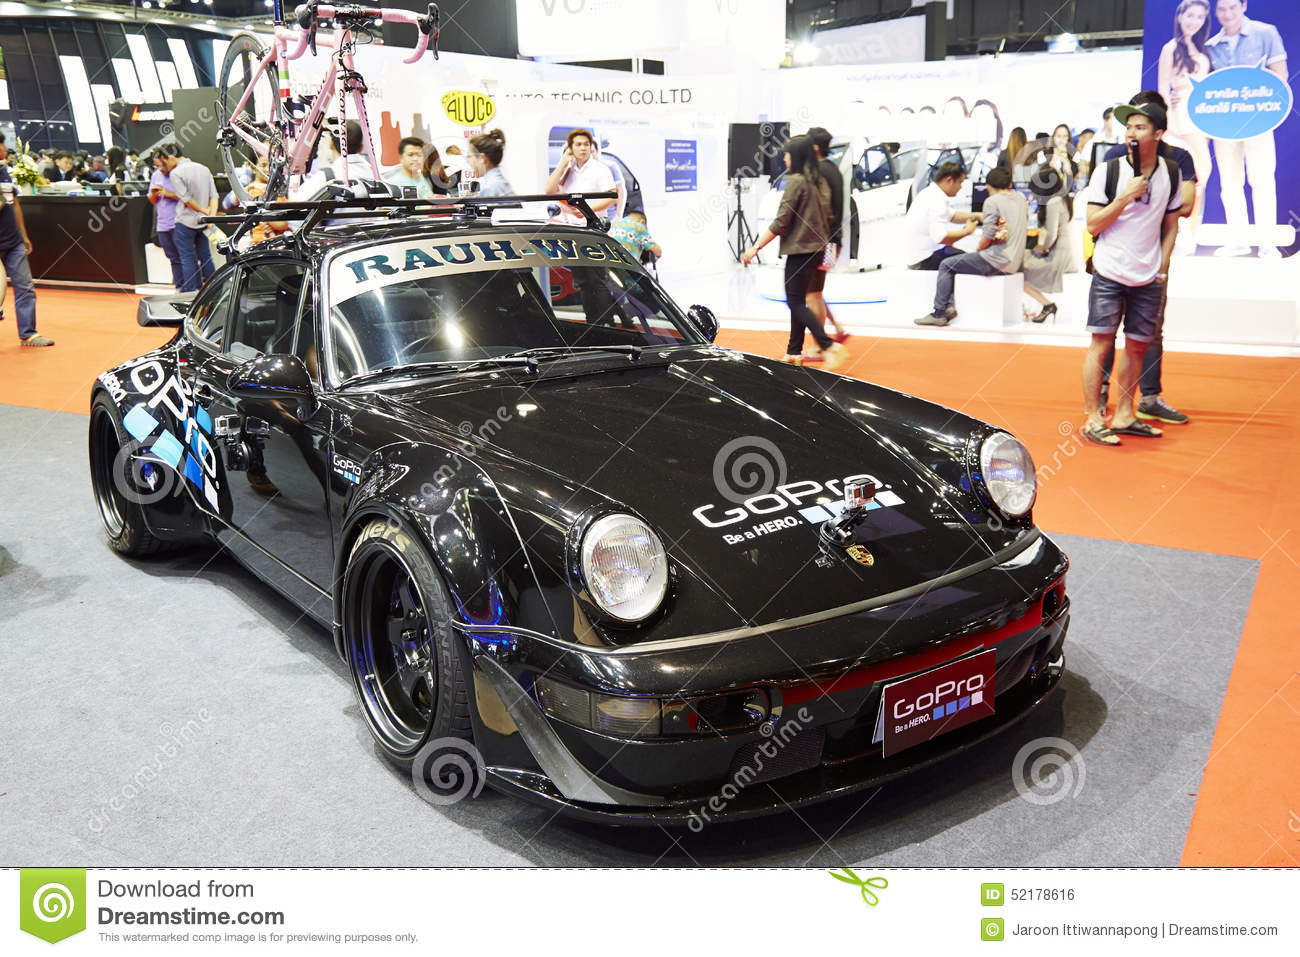 Porsche 911 Racing Modifications Car By Gopro On Display At The